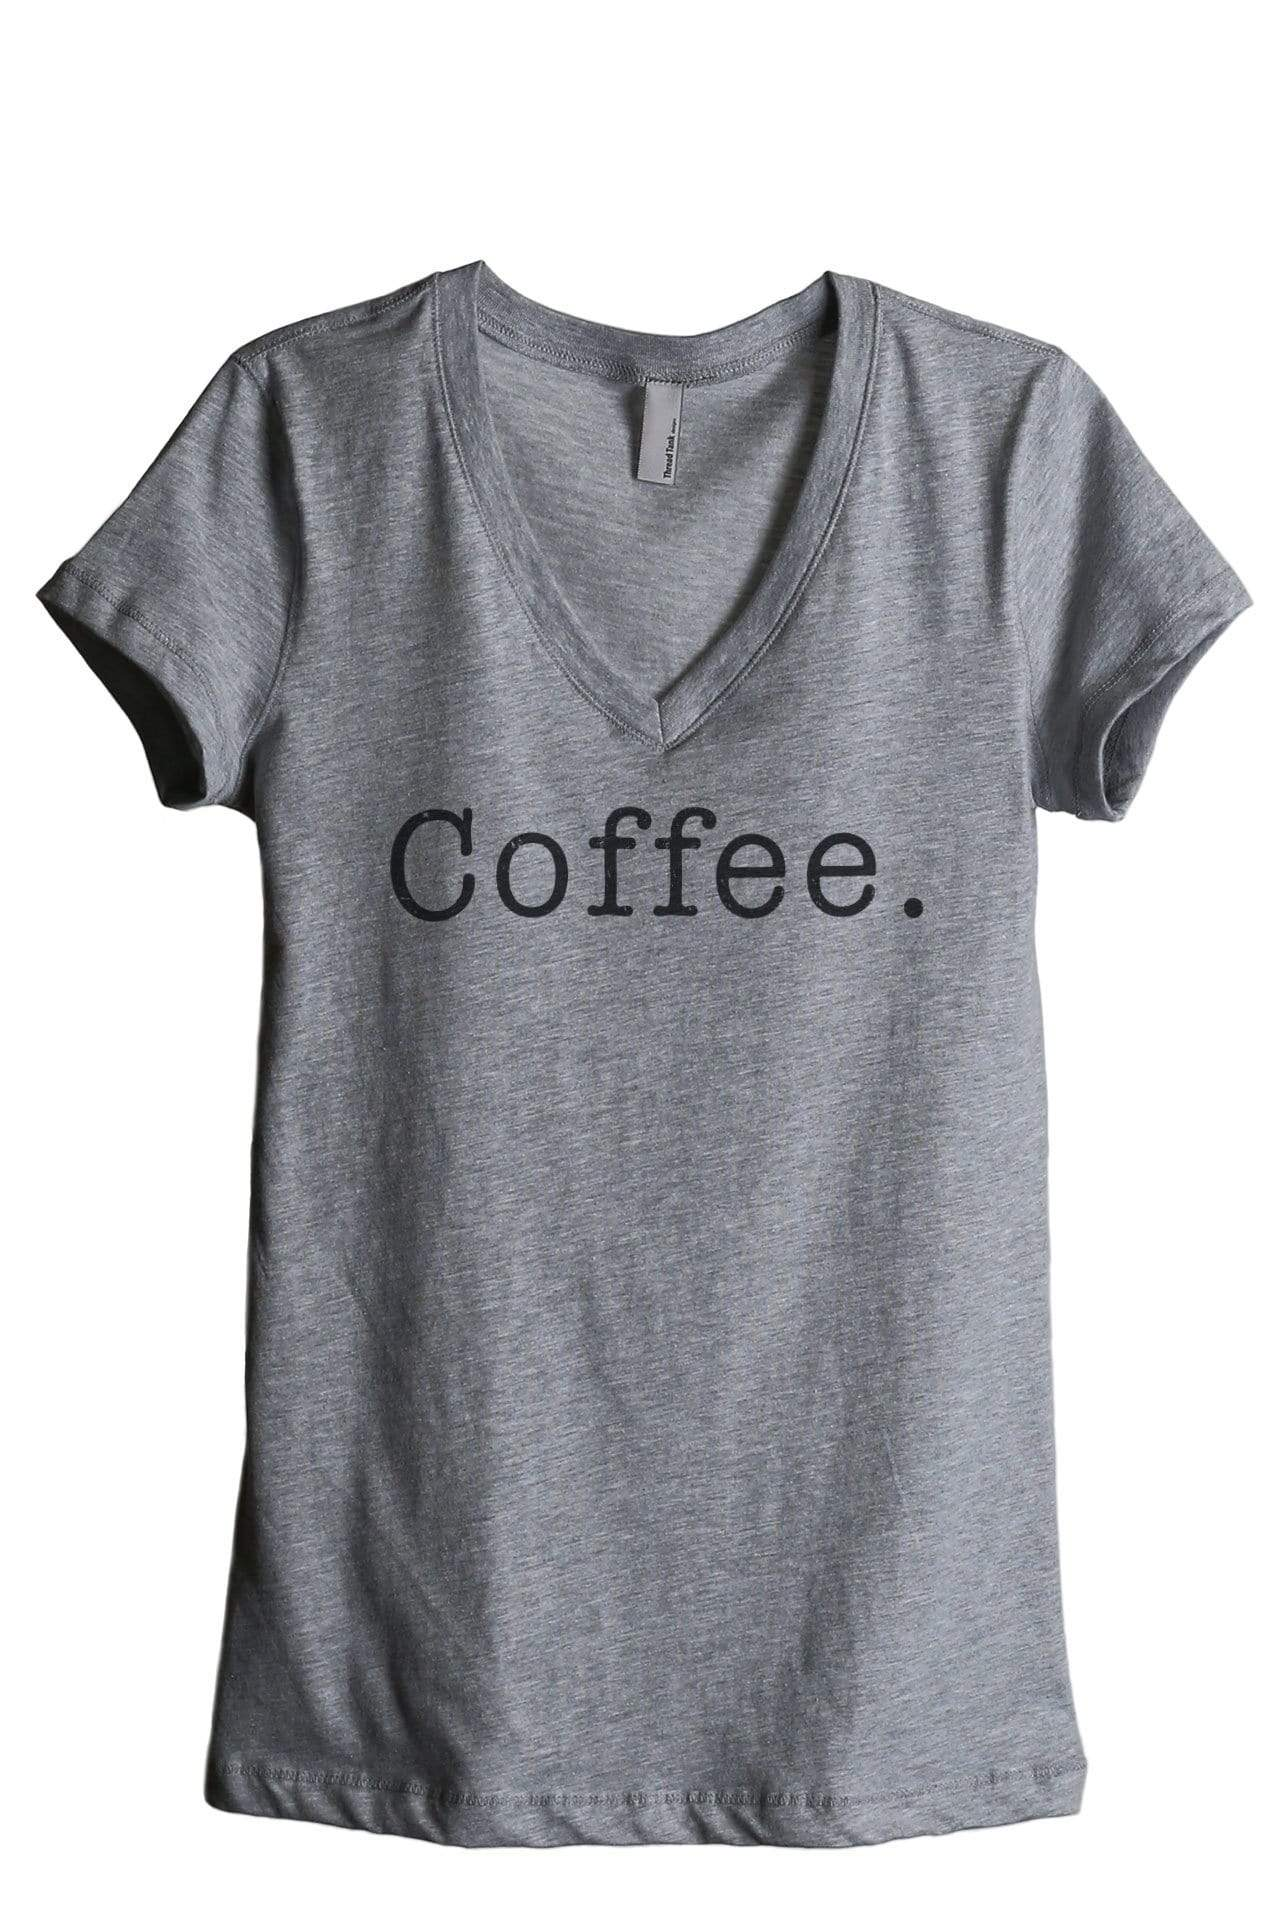 Coffee. - Thread Tank | Stories You Can Wear | T-Shirts, Tank Tops and Sweatshirts